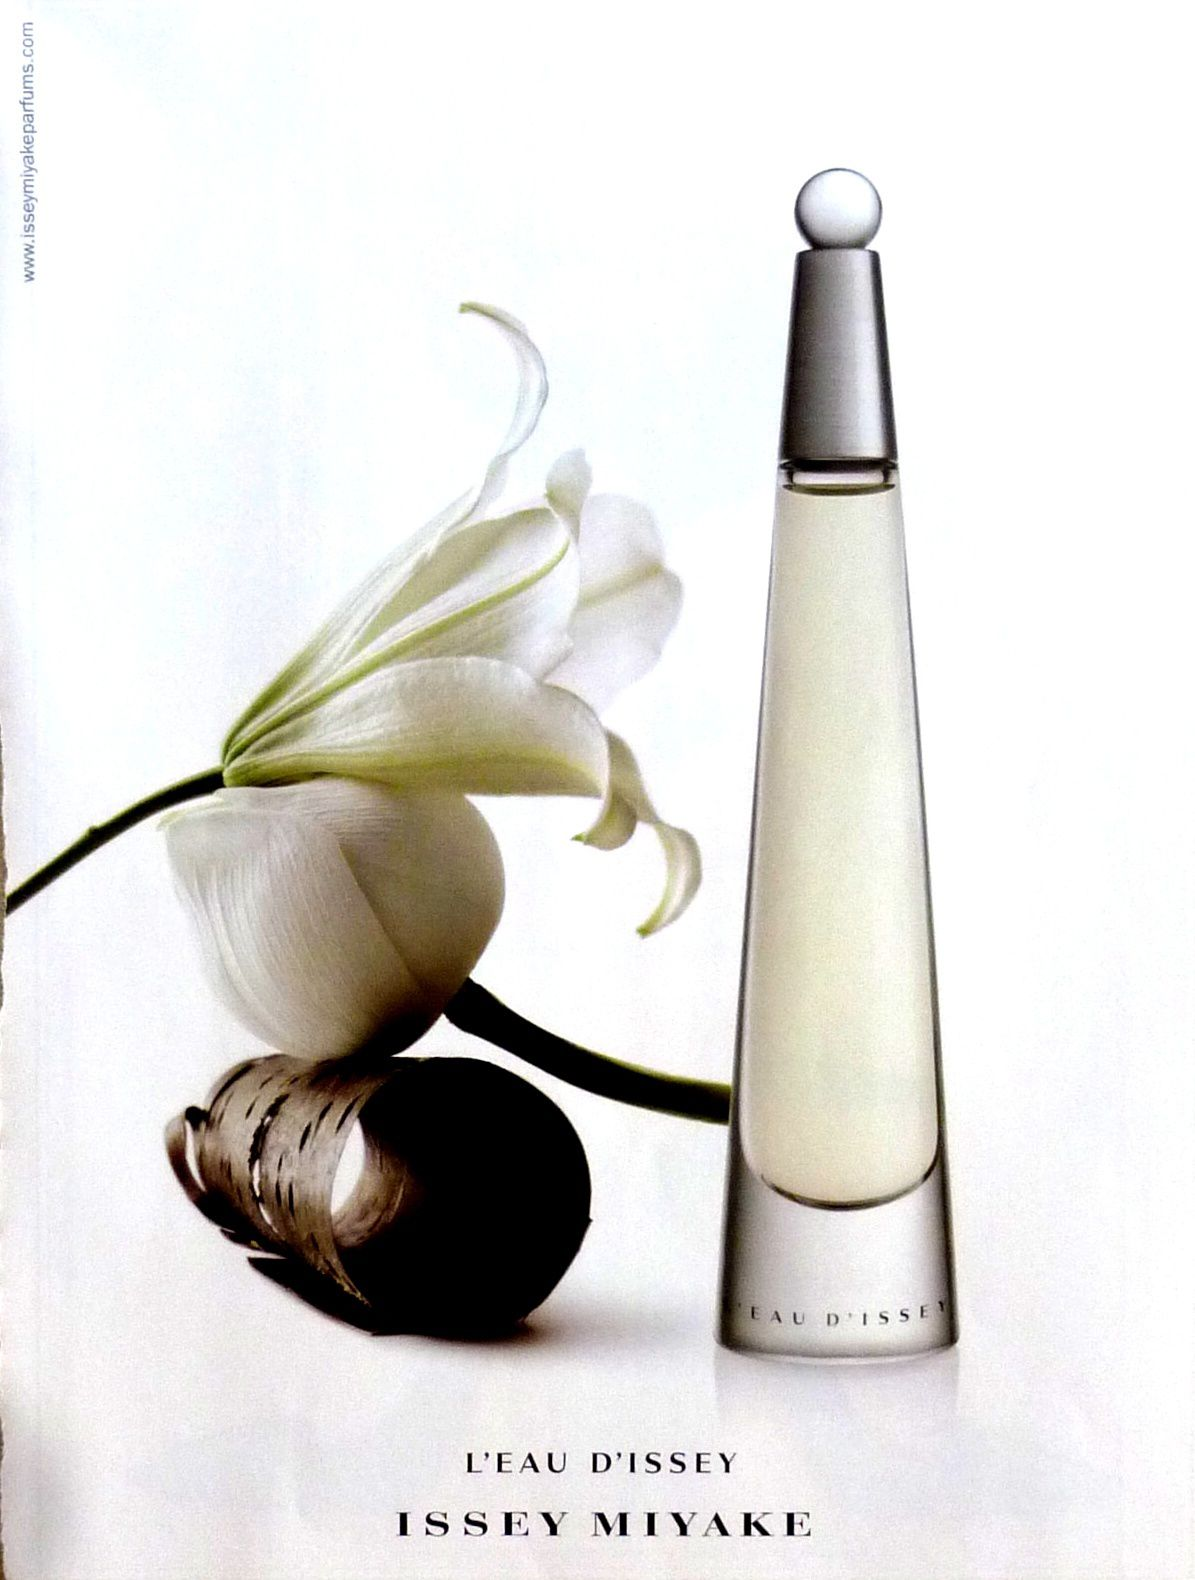 L'Eau d'Issey d'Issey MIYAKE